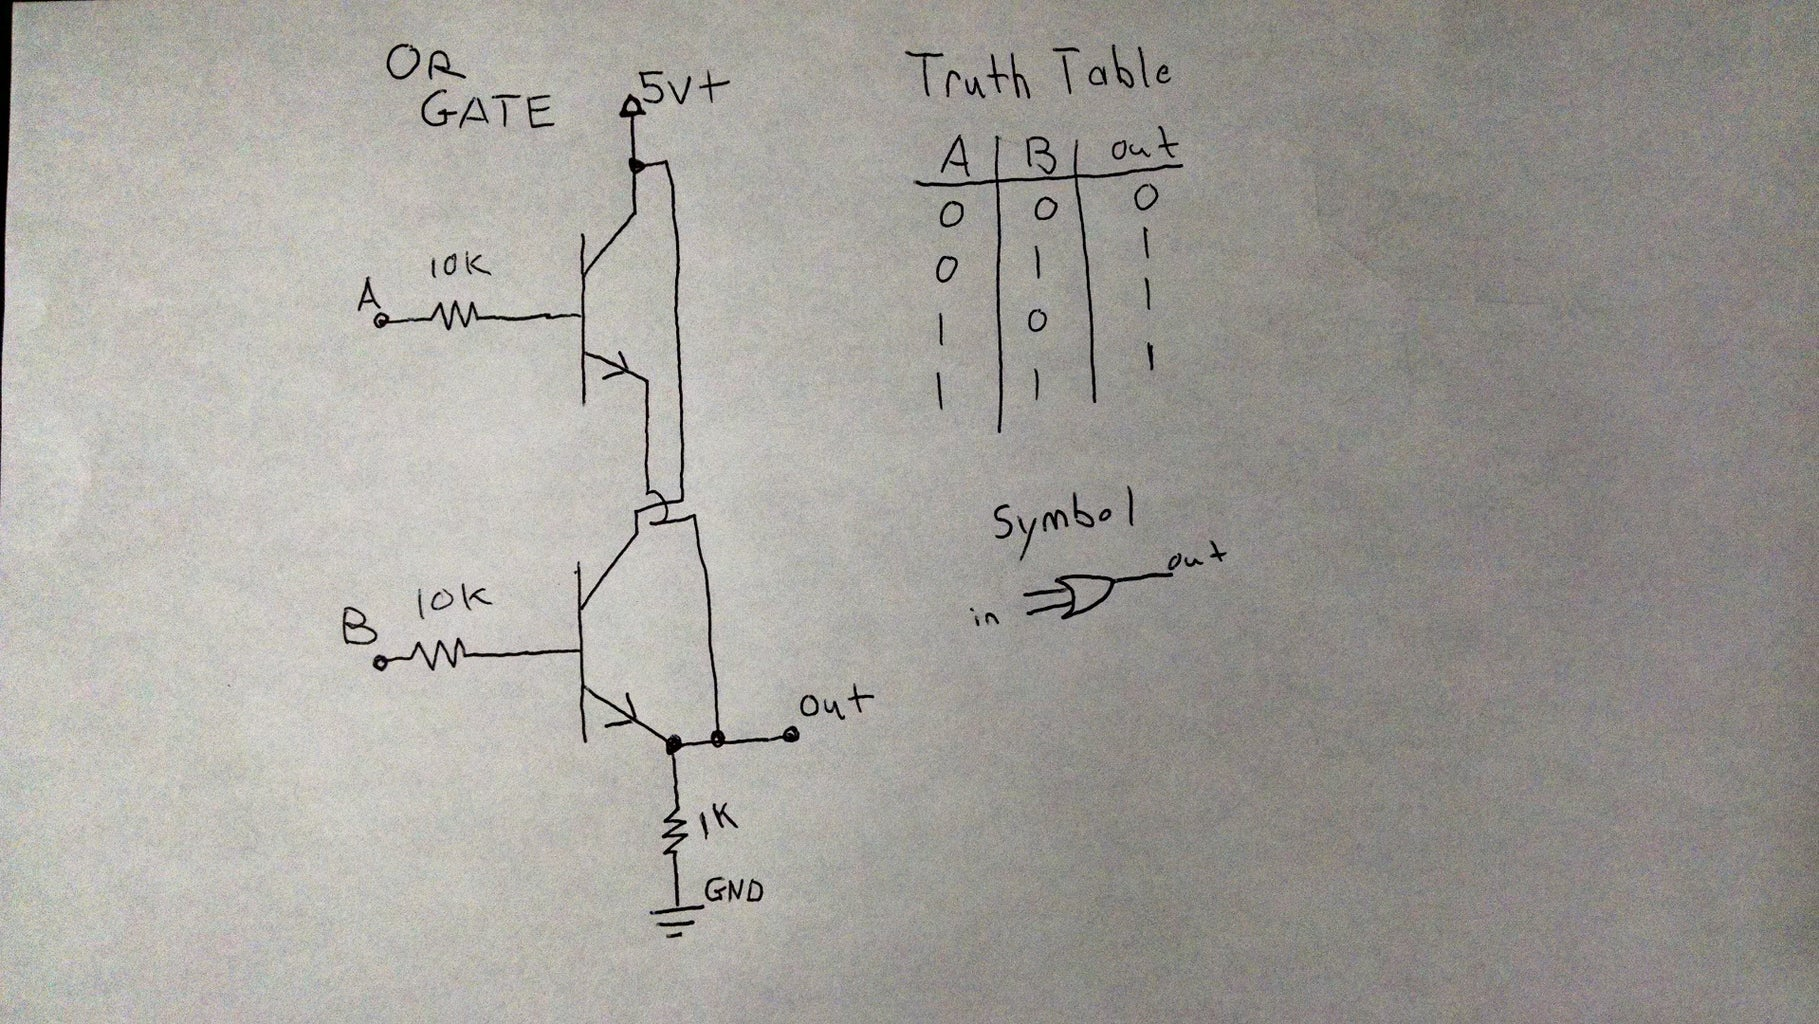 Schematic / Truth Table